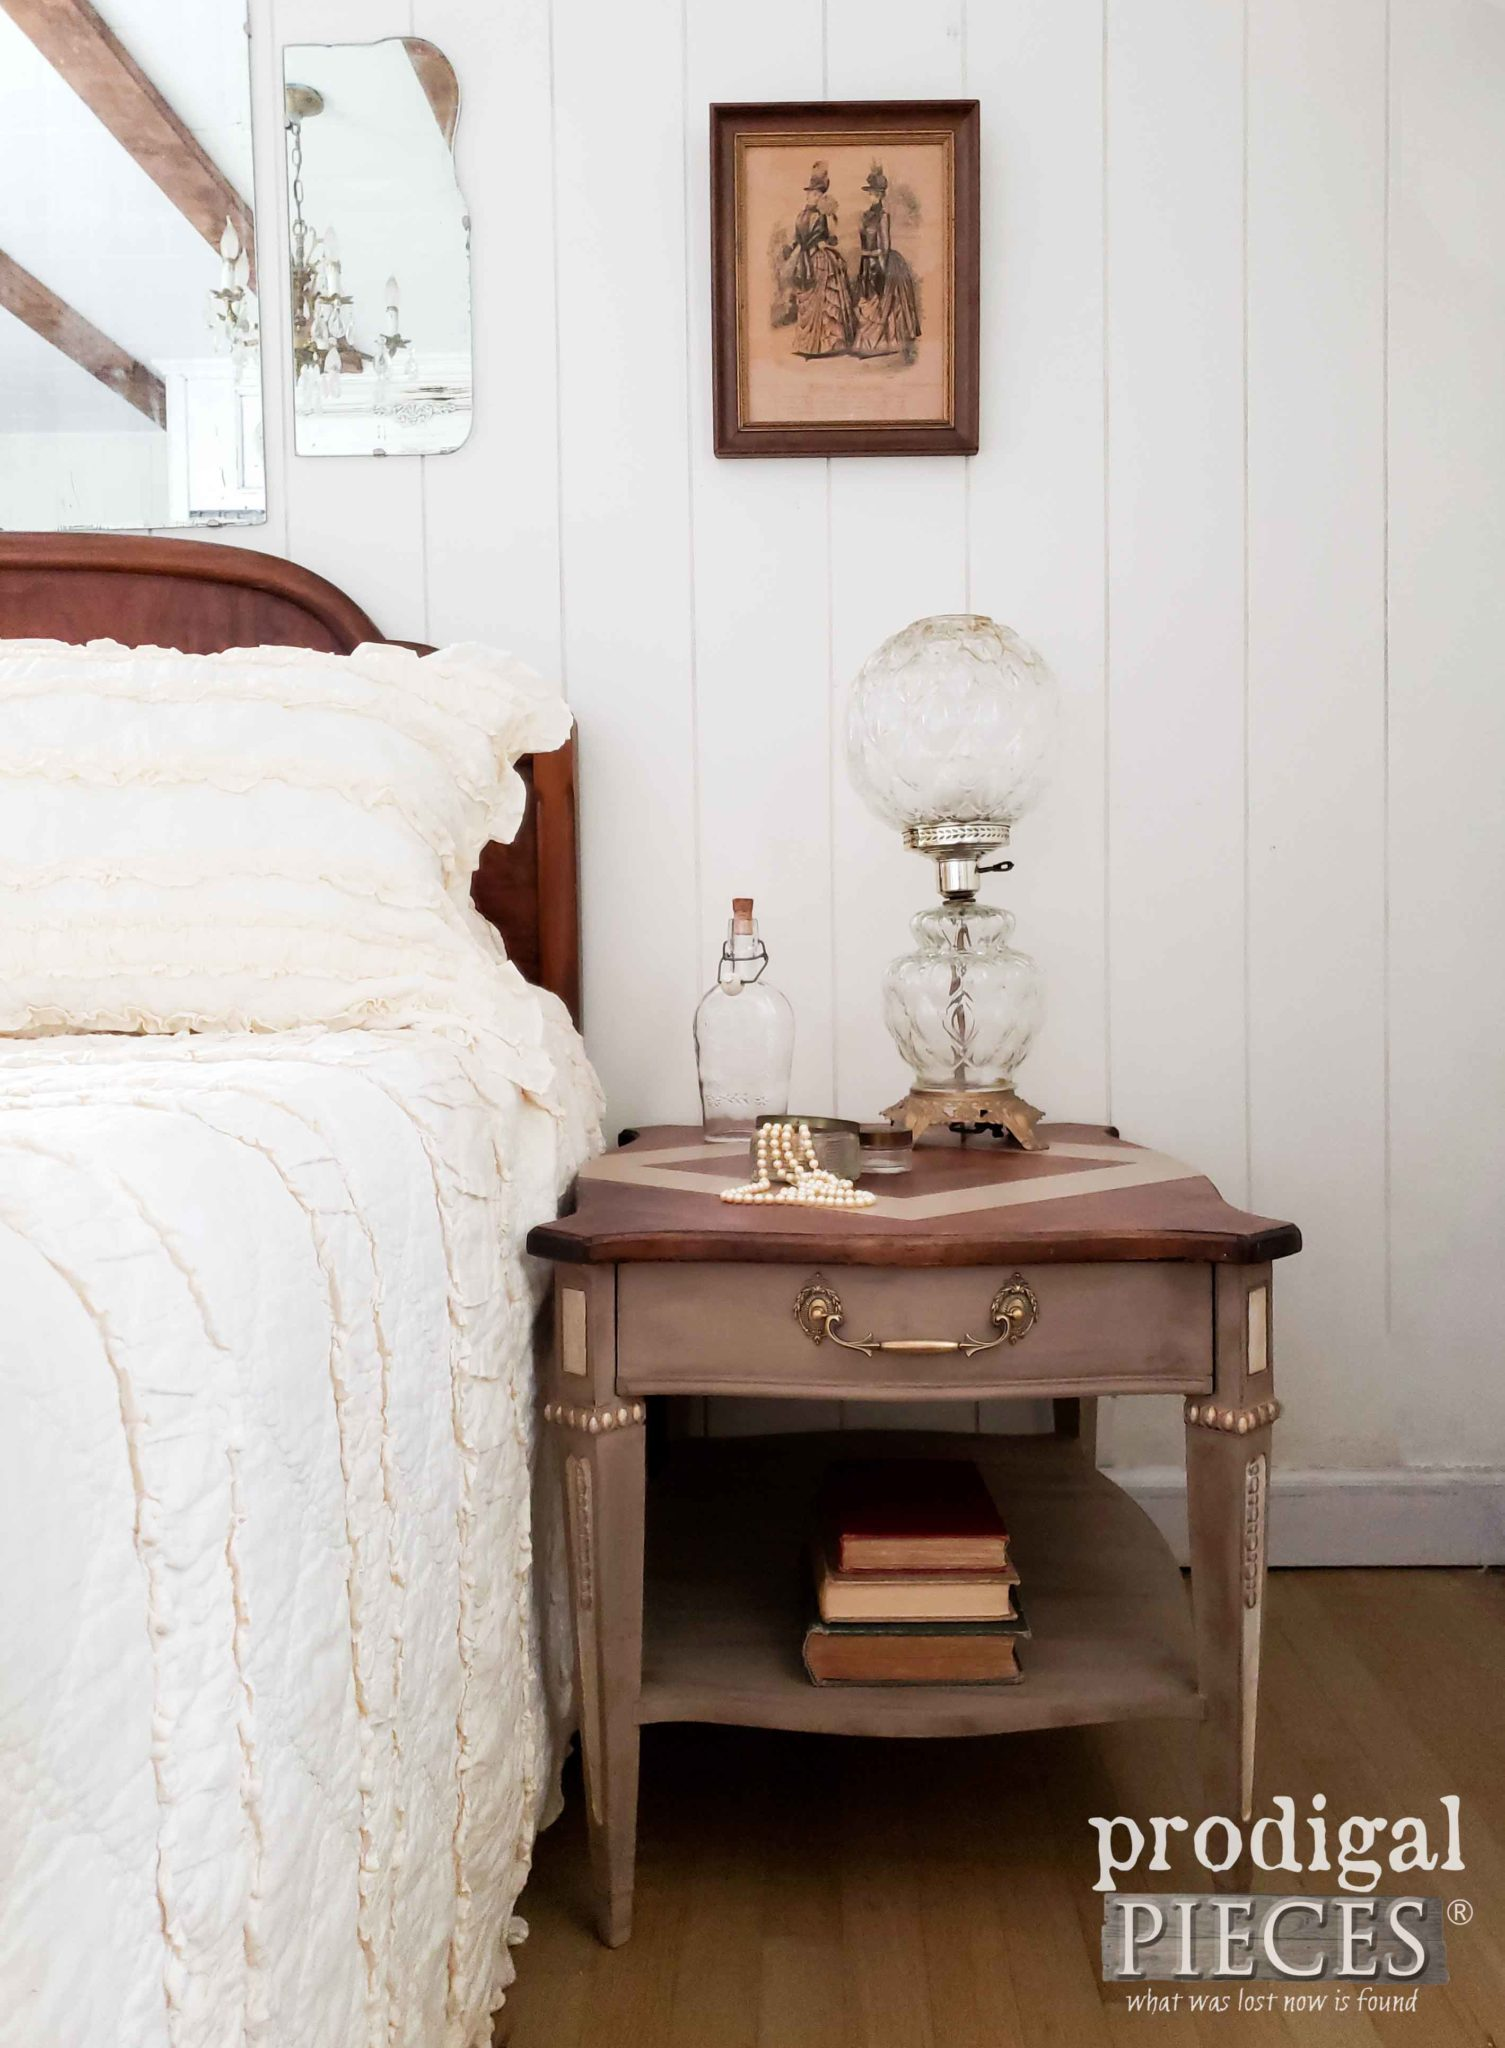 Vintage Style Bedroom Decor with Beautiful Side Table by Larissa of Prodigal Pieces | prodigalpieces.com | #prodigalpieces #furniture #diy